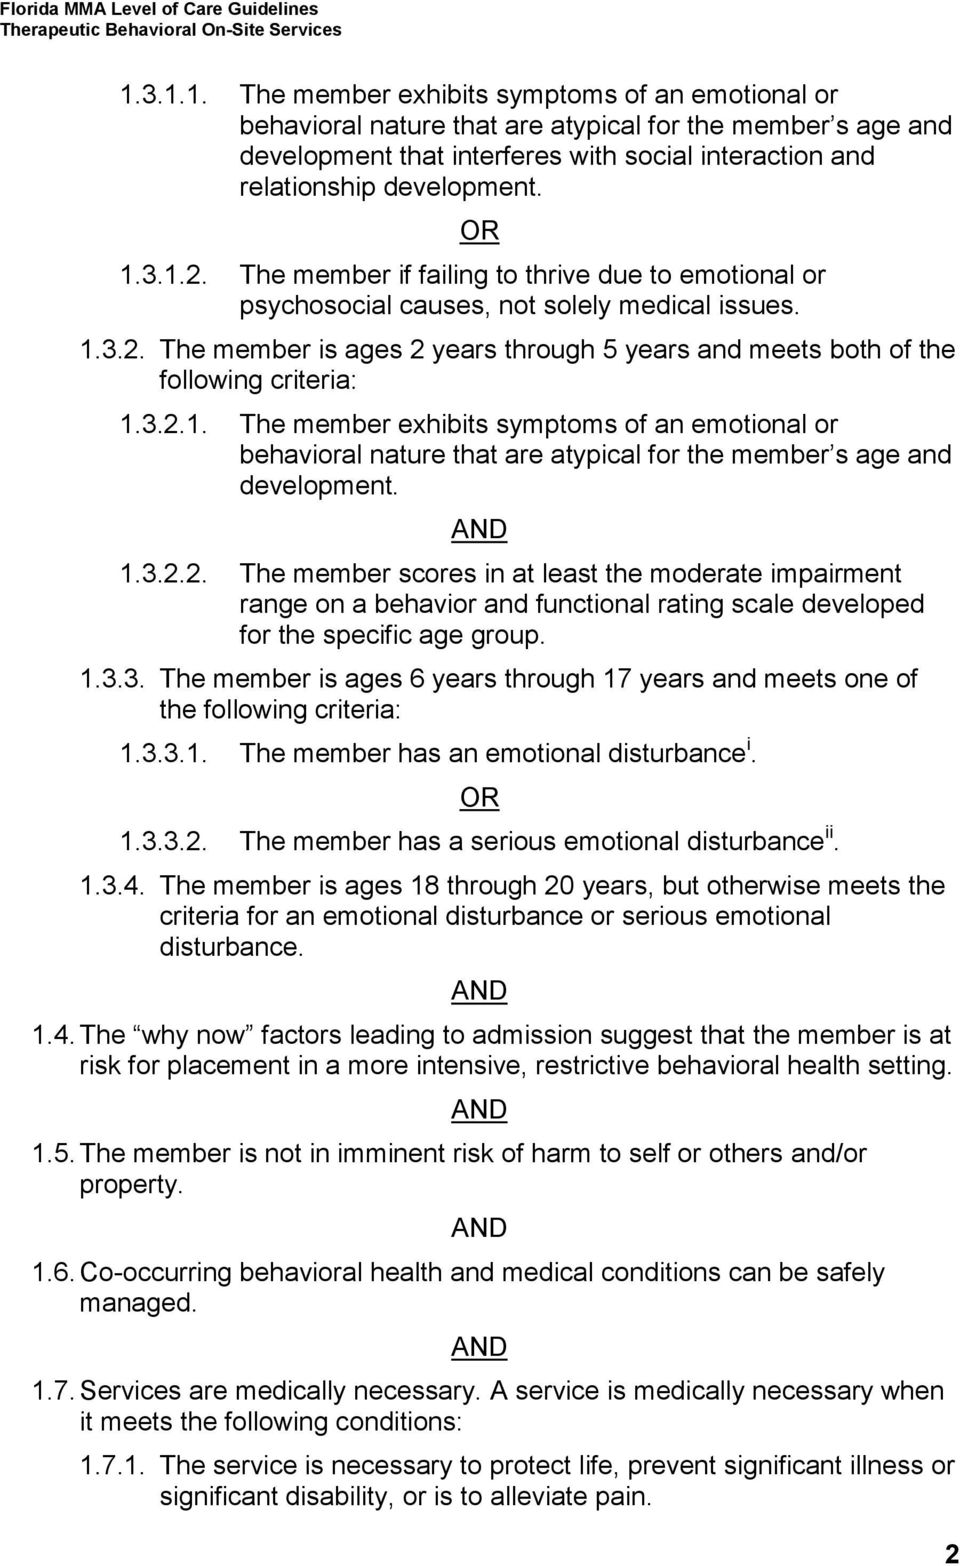 3.2.1. The member exhibits symptoms of an emotional or behavioral nature that are atypical for the member s age and development. 1.3.2.2. The member scores in at least the moderate impairment range on a behavior and functional rating scale developed for the specific age group.